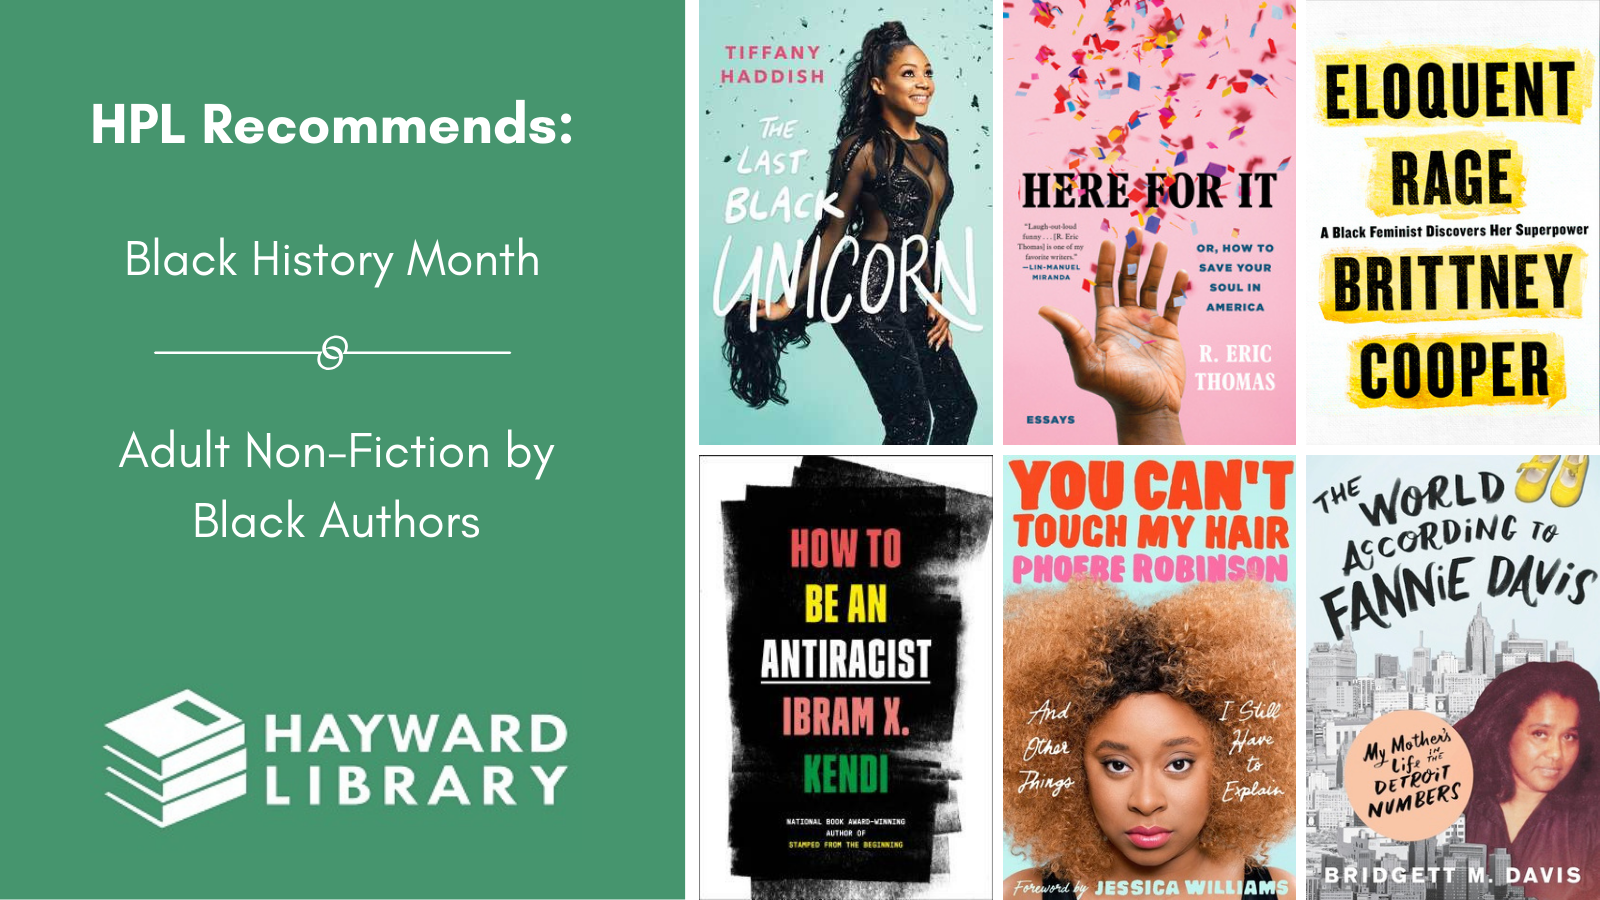 Collage of book covers with a green block on left side that says HPL Recommends, Black History Month, Adult Non-Fiction by Black Authors in white text, with Hayward Library logo below it.